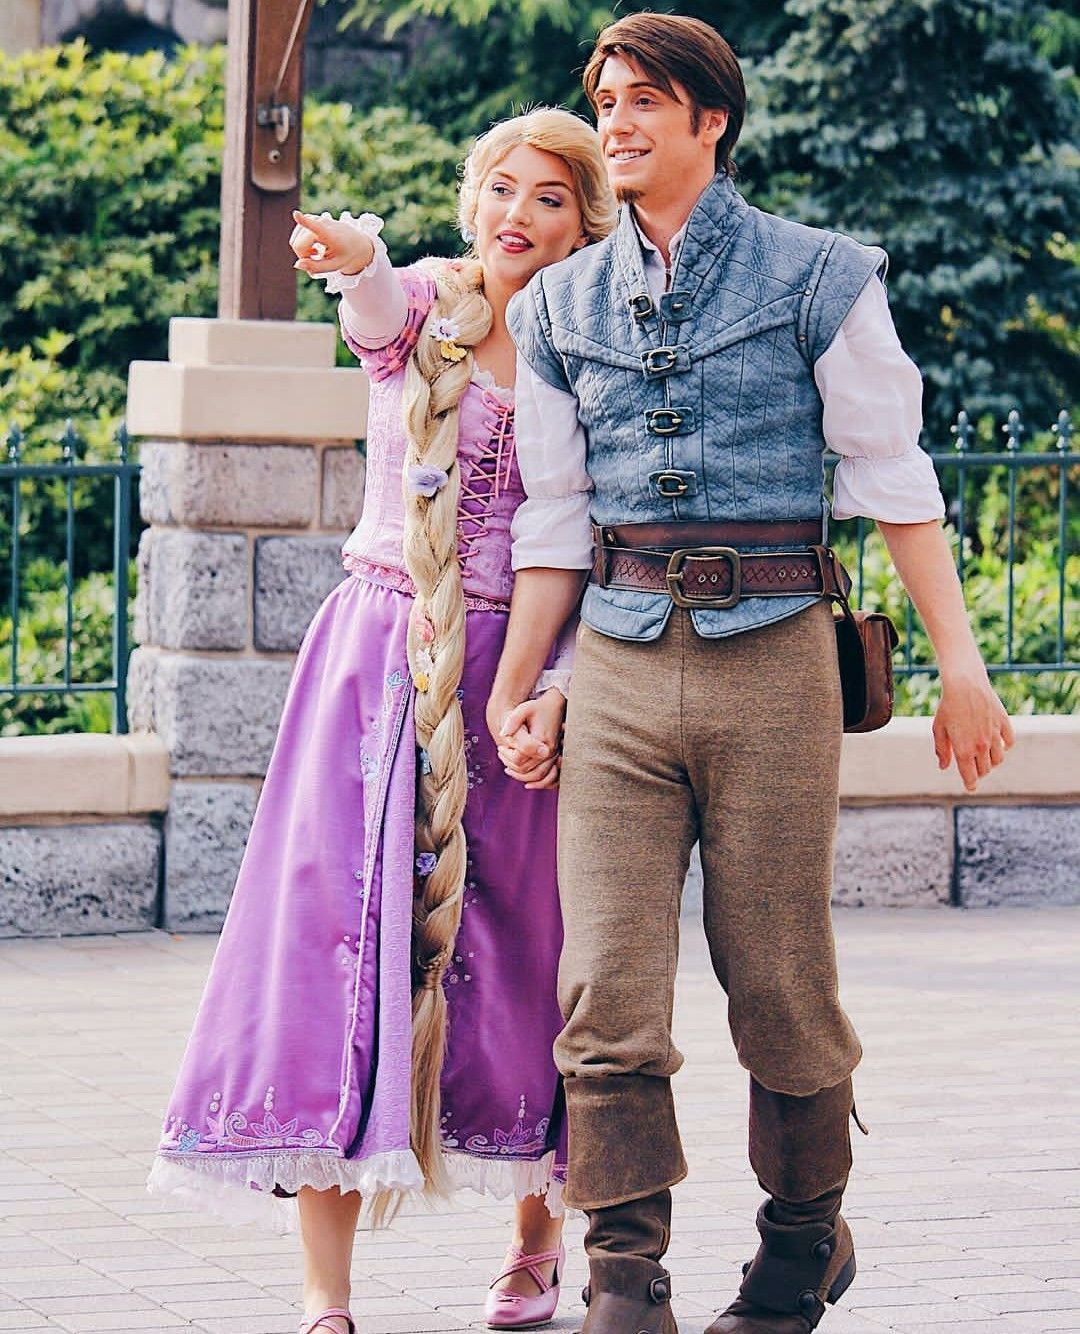 Rapunzel And Flynn Rider Rapunzel Cosplay Flynn Rider Costume Tangled Cosplay